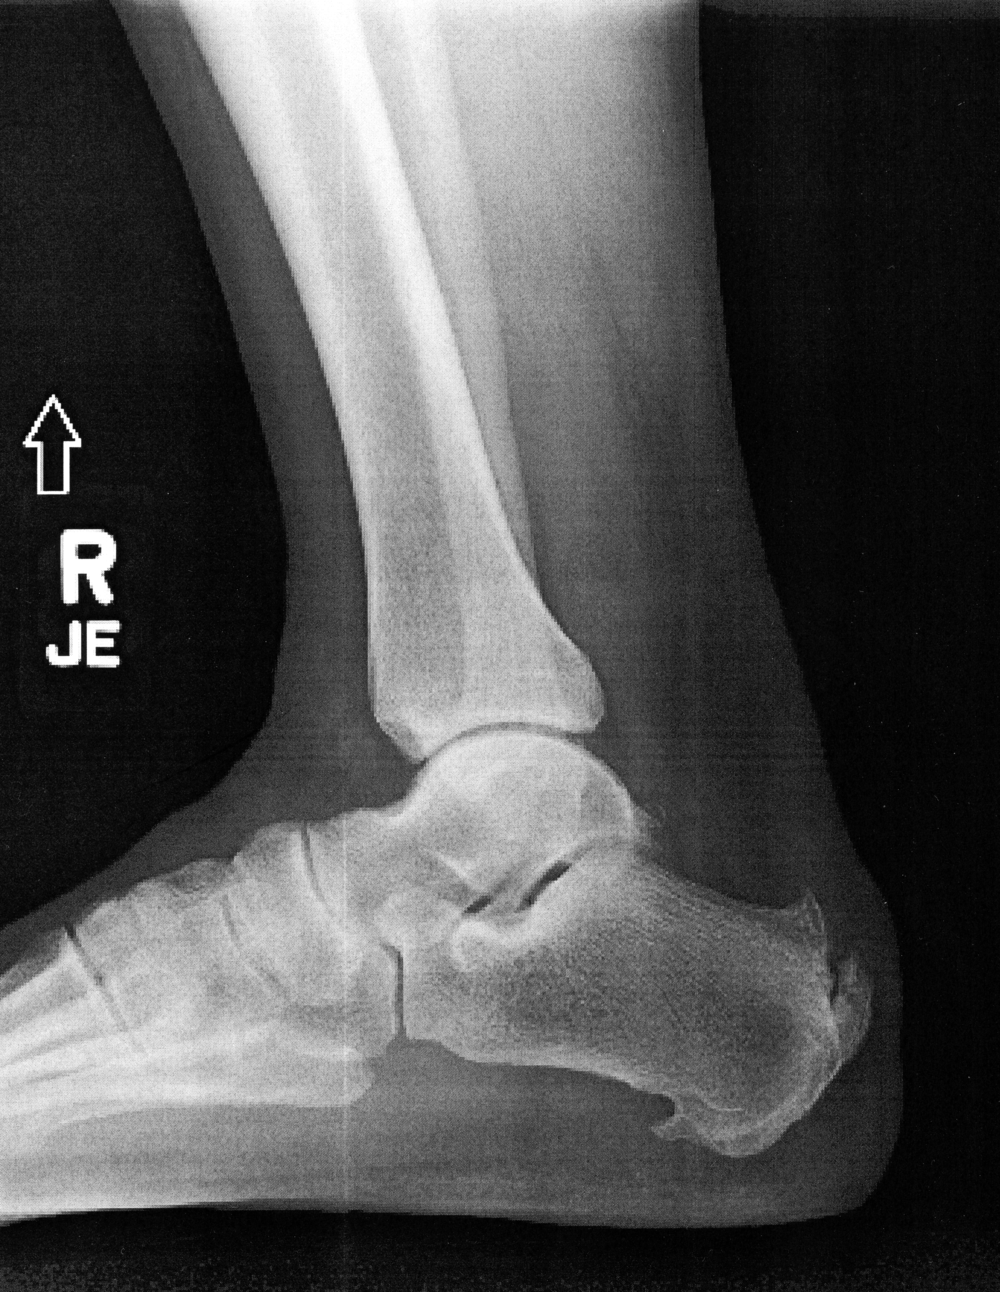 Note the three sharp protrusions on my heel.